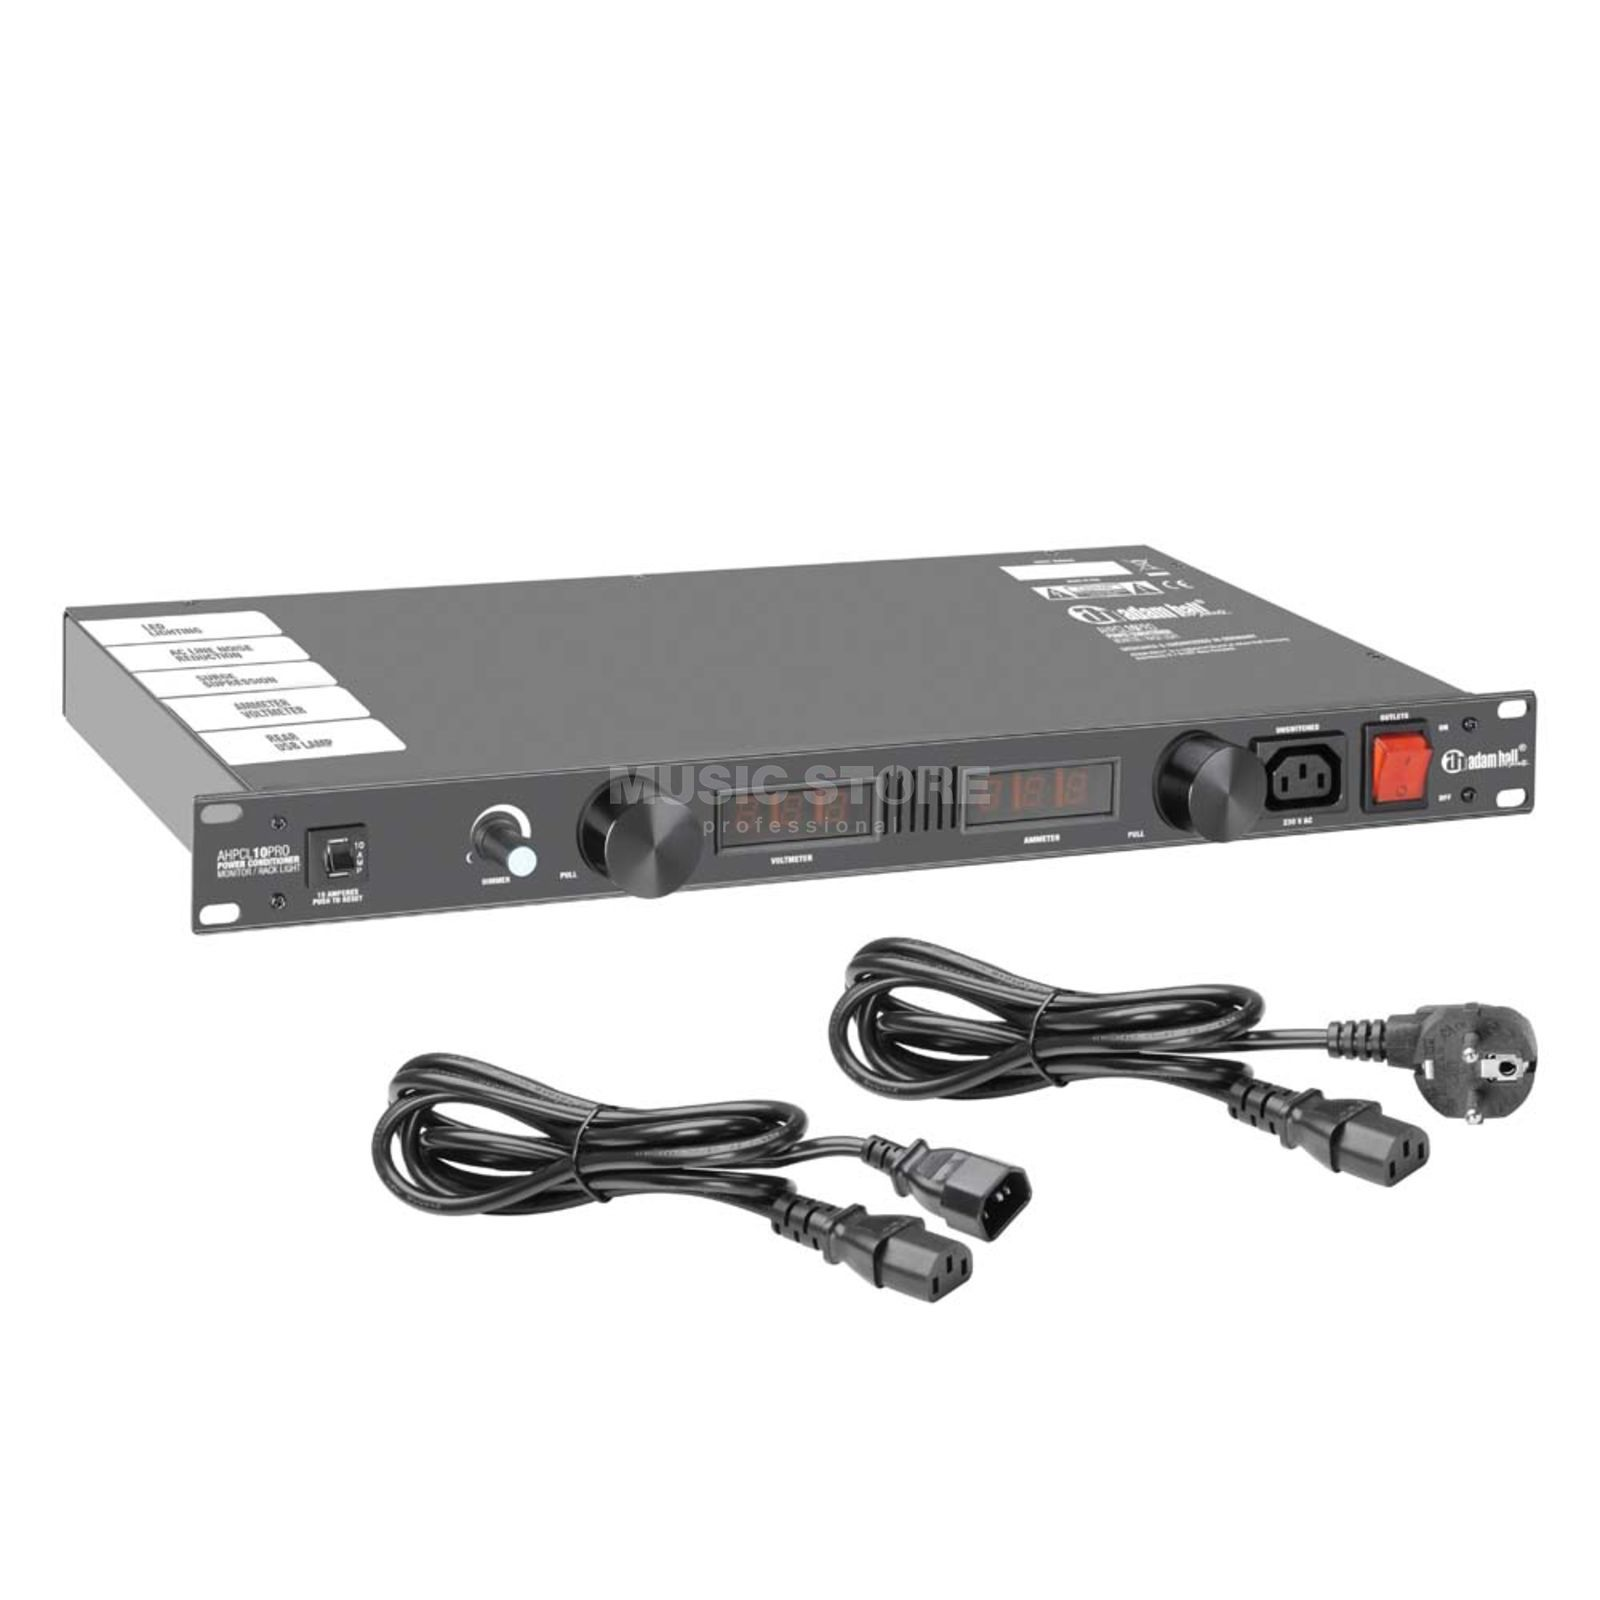 "Adam Hall PCL 10 PRO Power Conditioner 19"", mit Volt- u.Amperemeter Produktbild"